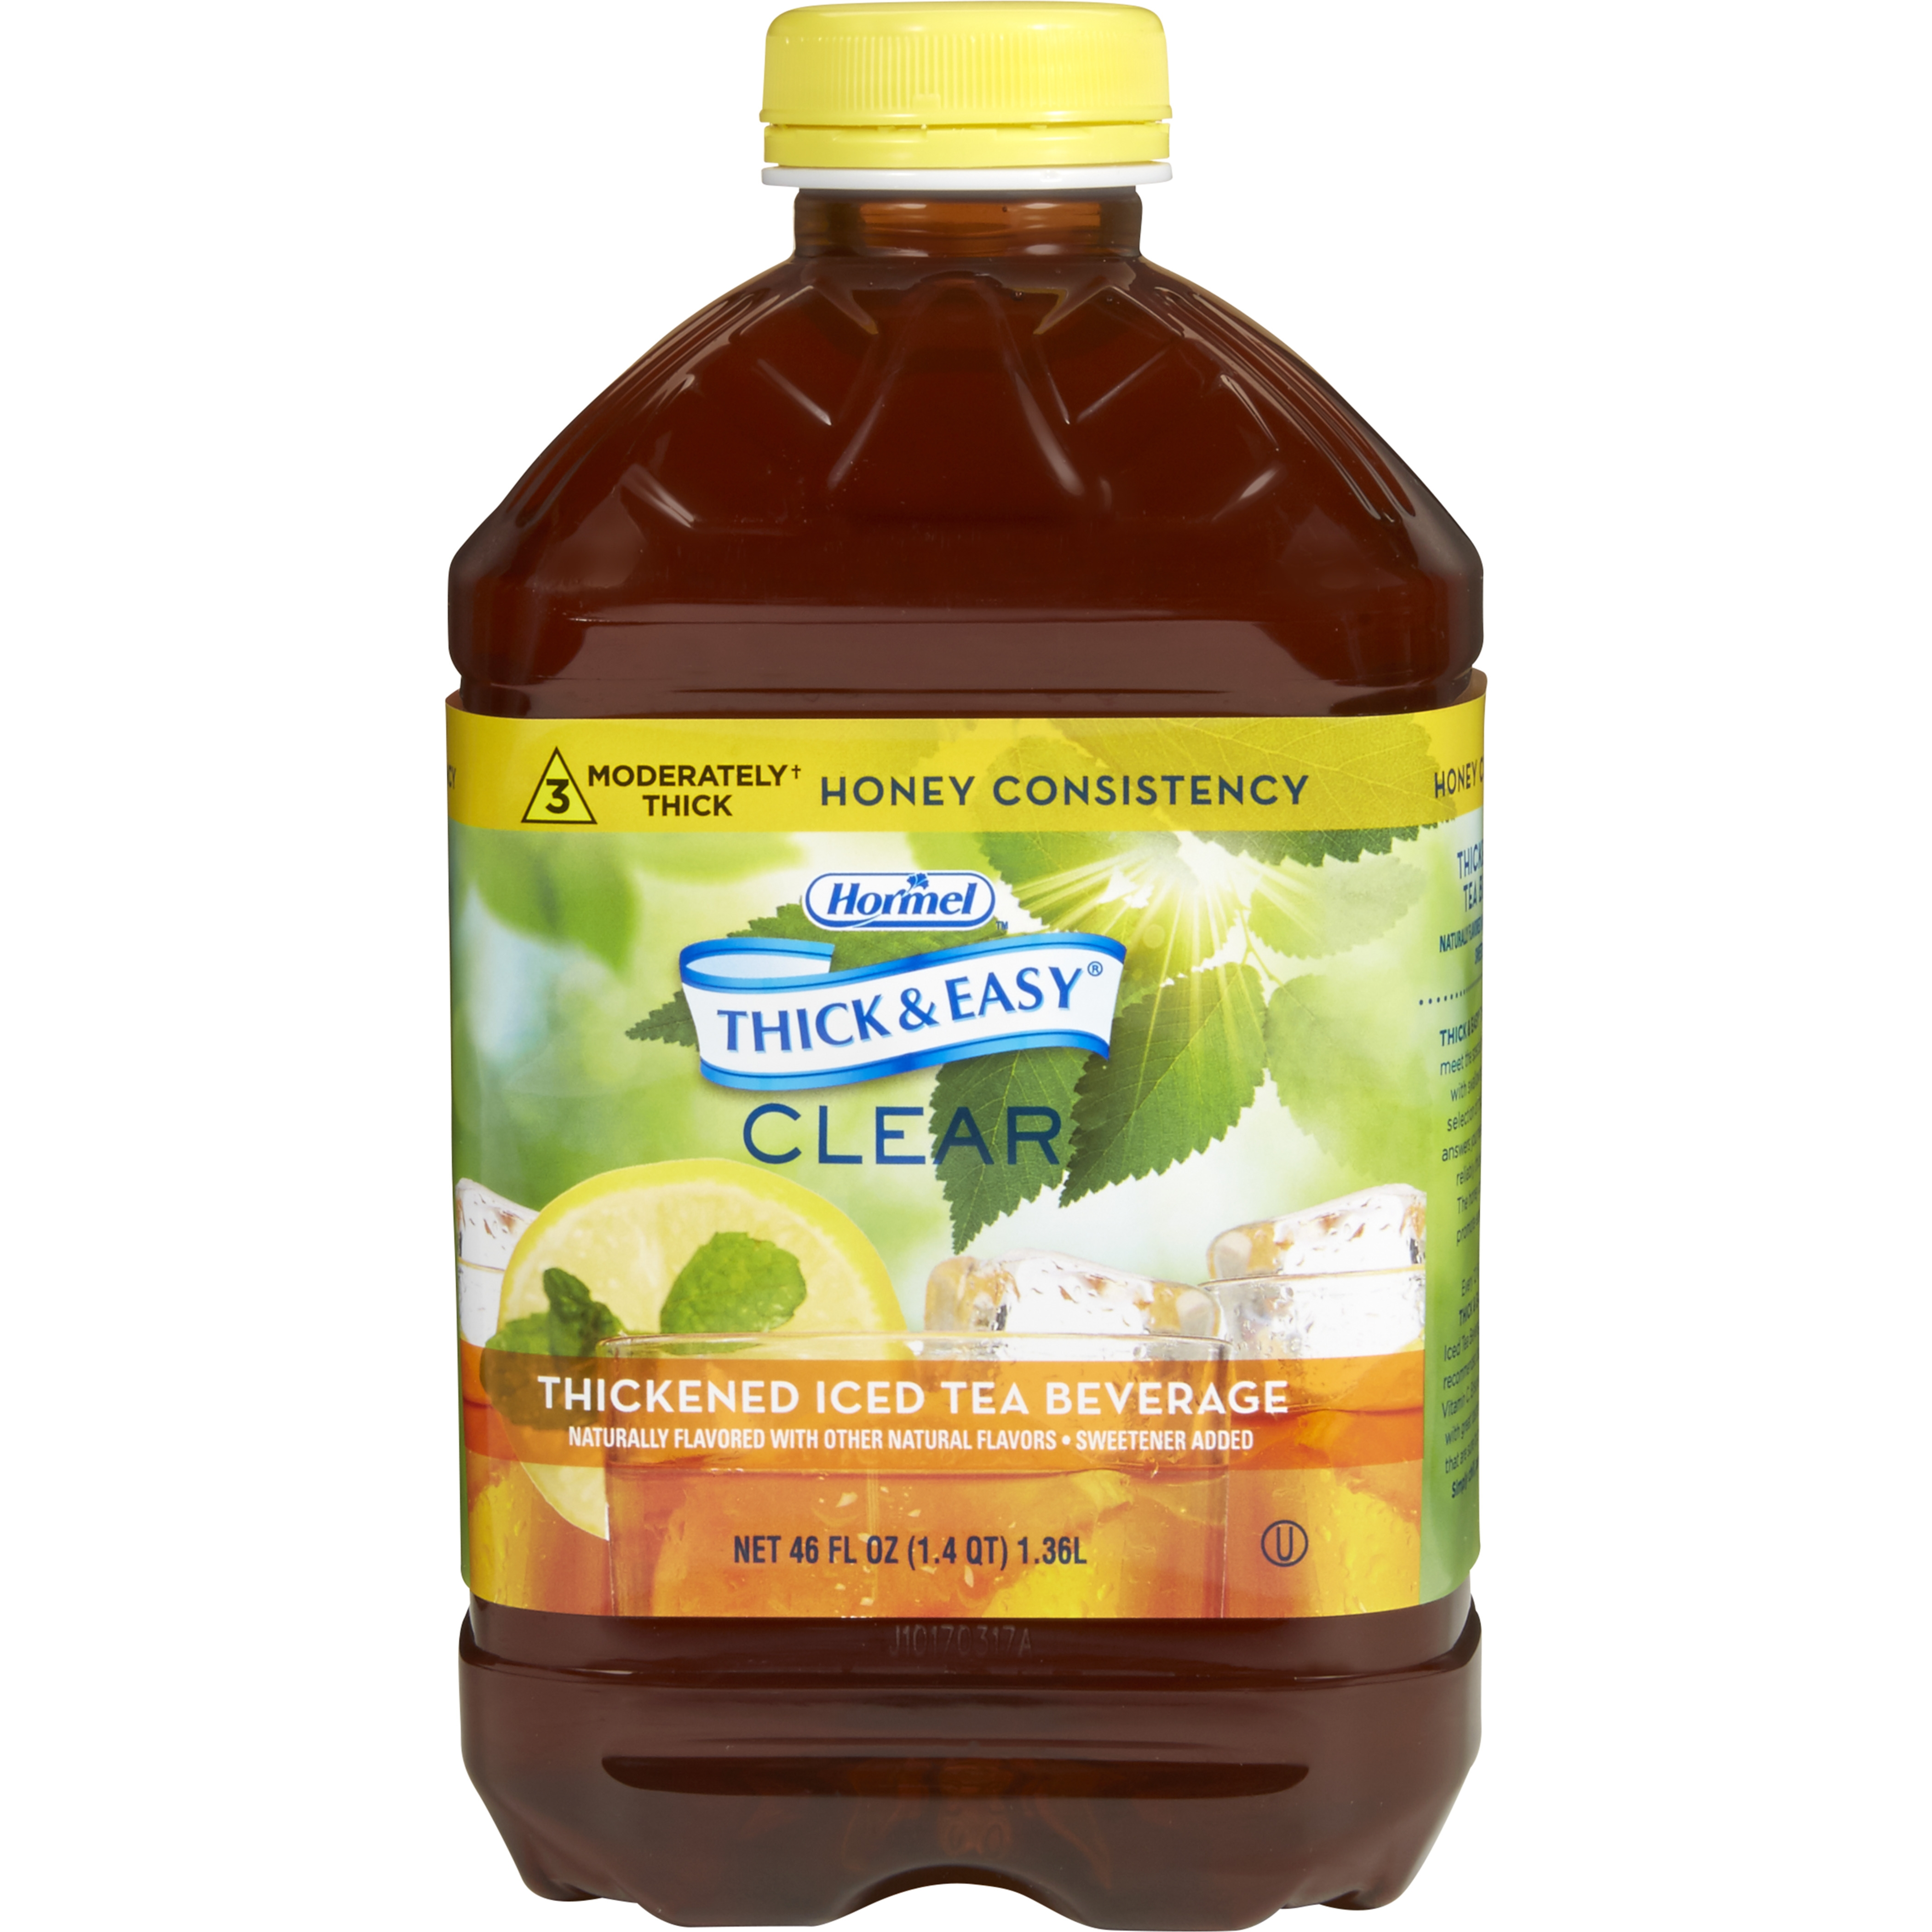 Hormel Thick & Easy Clear Thickened Beverage, Honey Consistency, Moderately Thick, Iced Tea, 46 oz., 45587, 1 Each